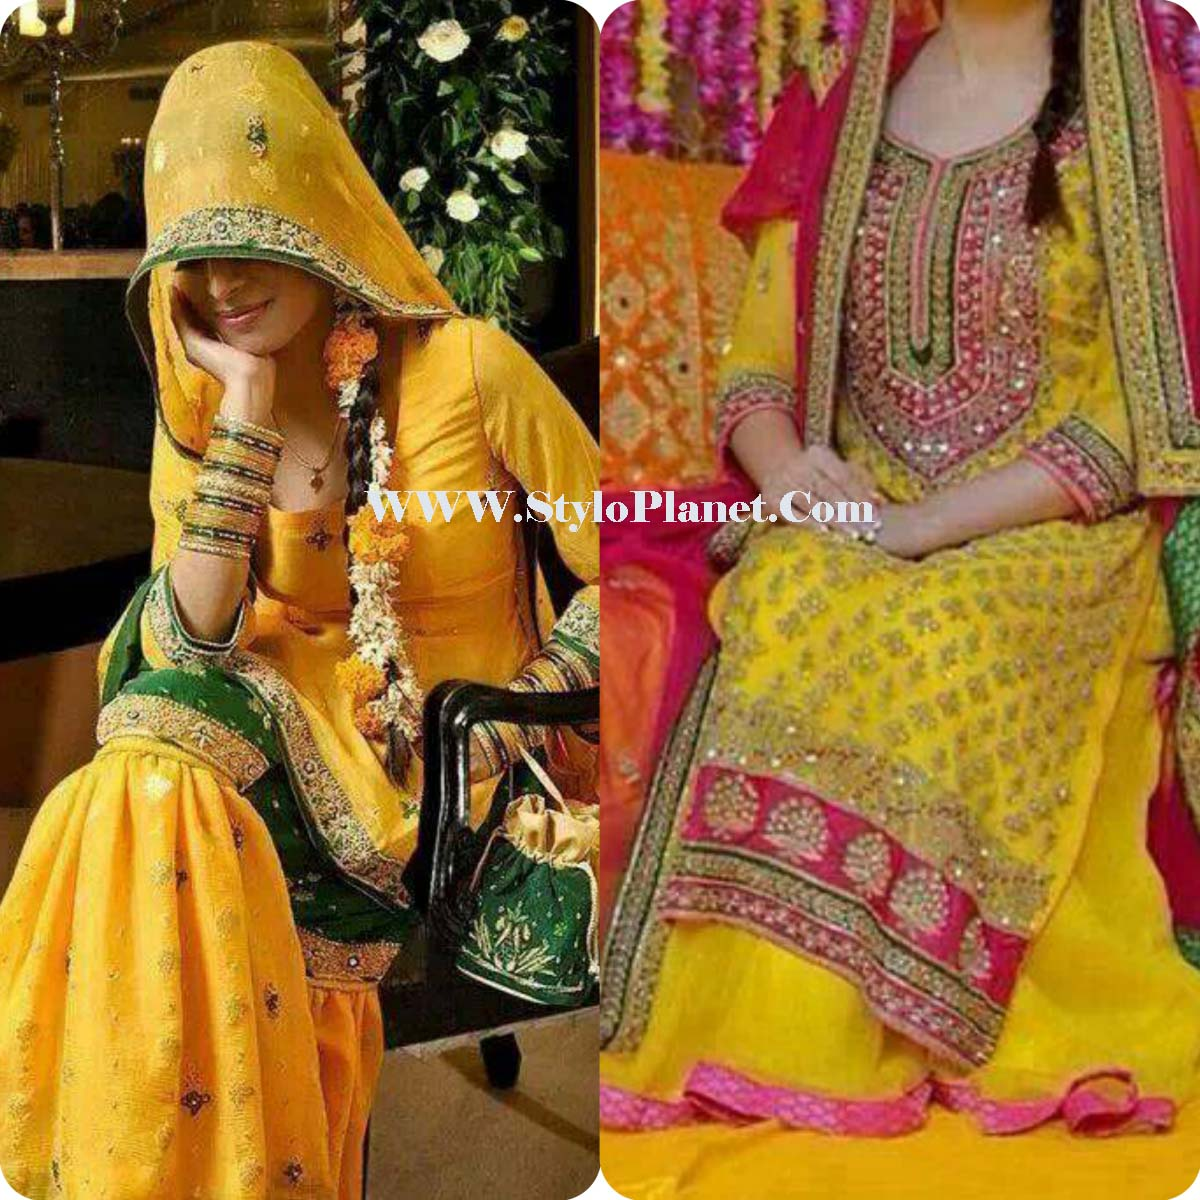 Mehndi design 2017 in pakistan - Perfect Pakistani Mehndi Dresses 2017 For Stylish Girls Are Very Crucial In Mehndi Due For Marriage And Some Girls Enhance Themselves With The Aid Of Doing